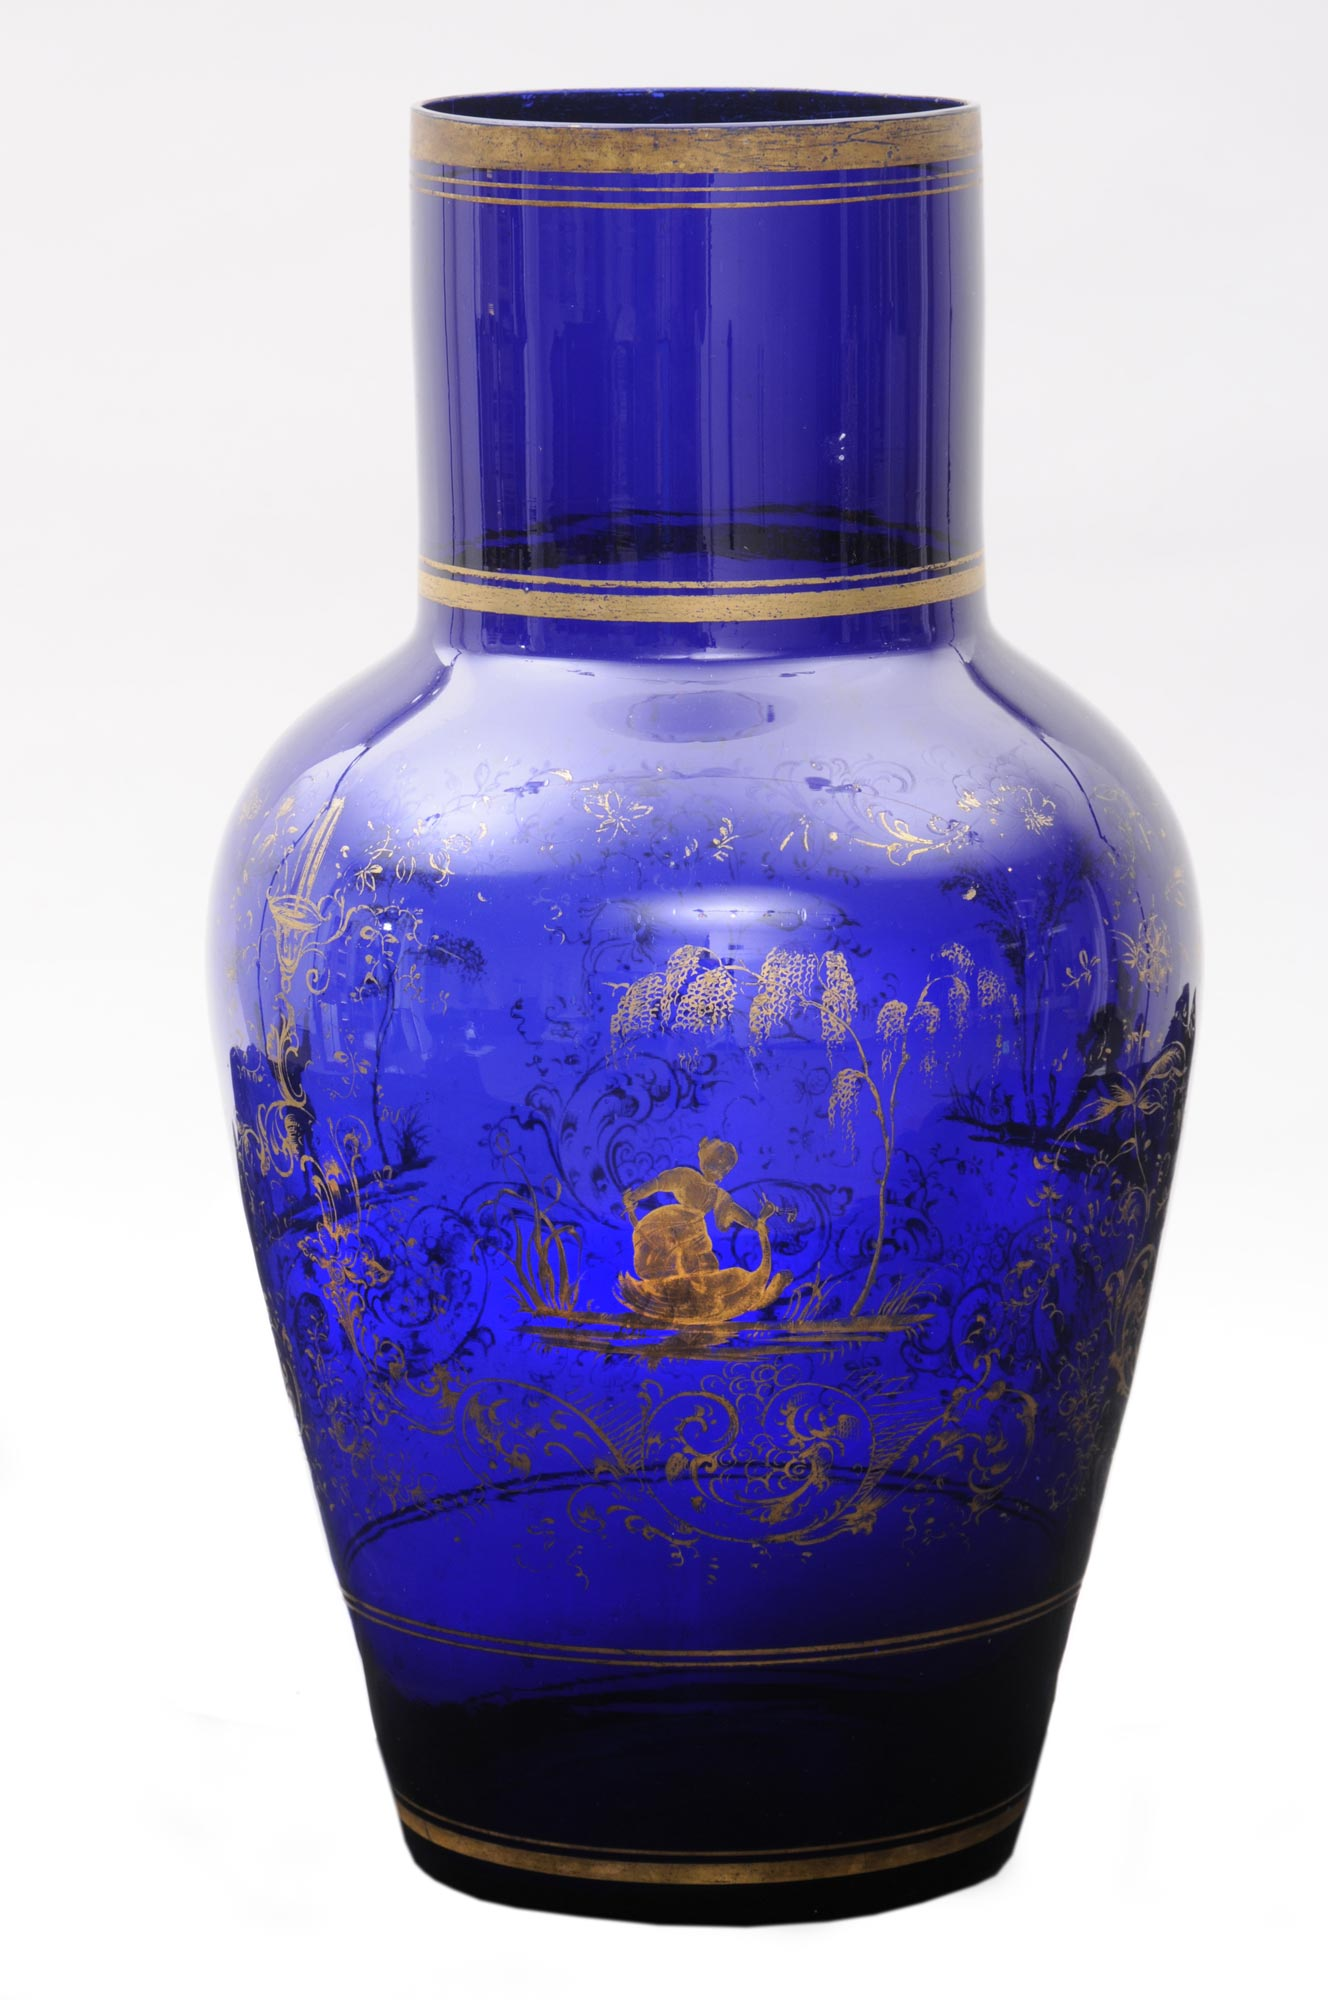 u00bb product  u00bb larage cobalt blue vase